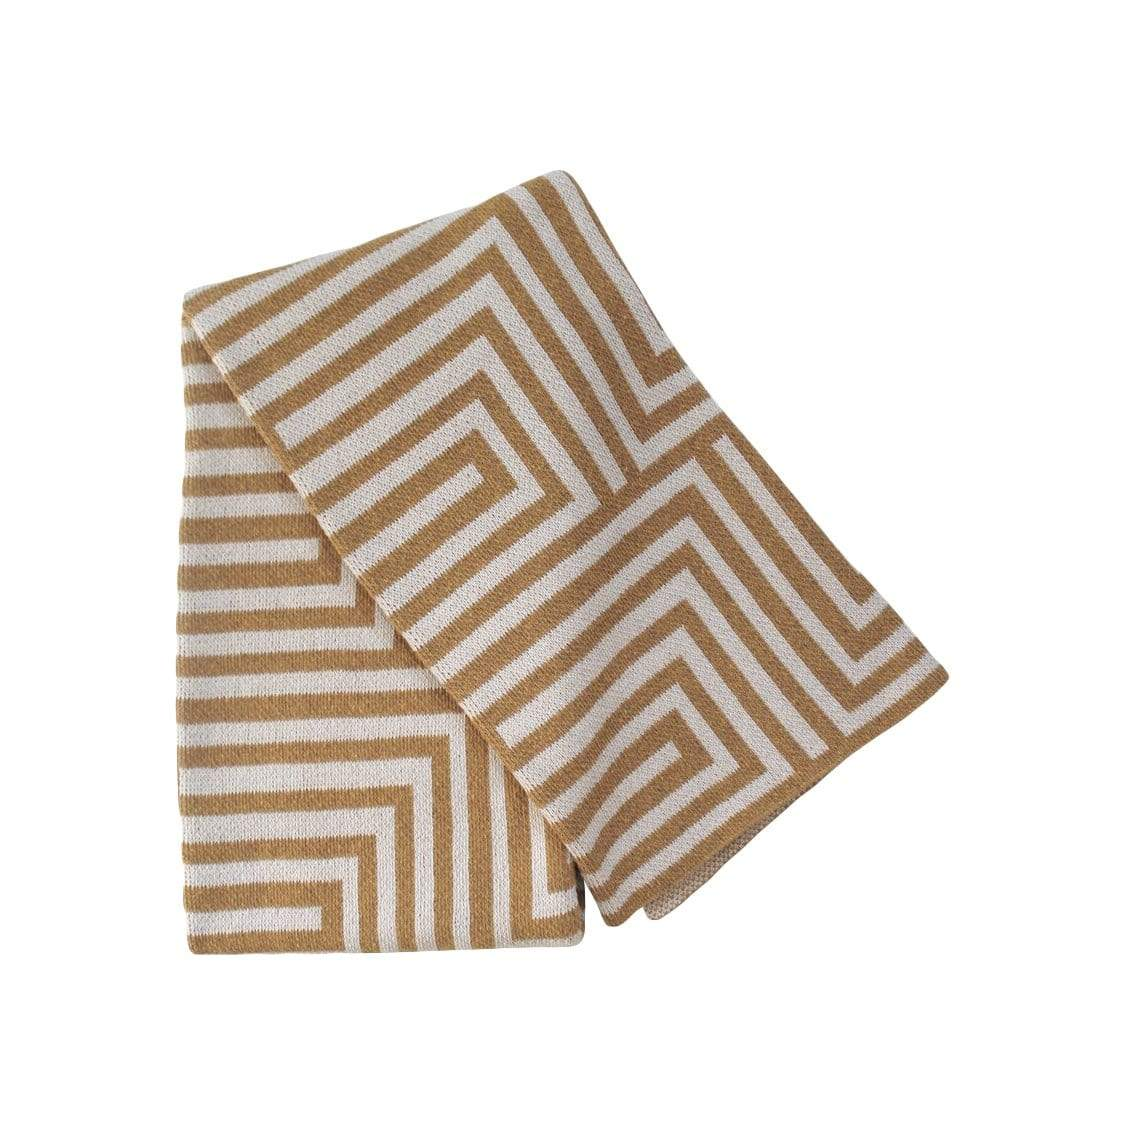 Happy Habitat Cushions + Throws Maze Gold + Linen Throw